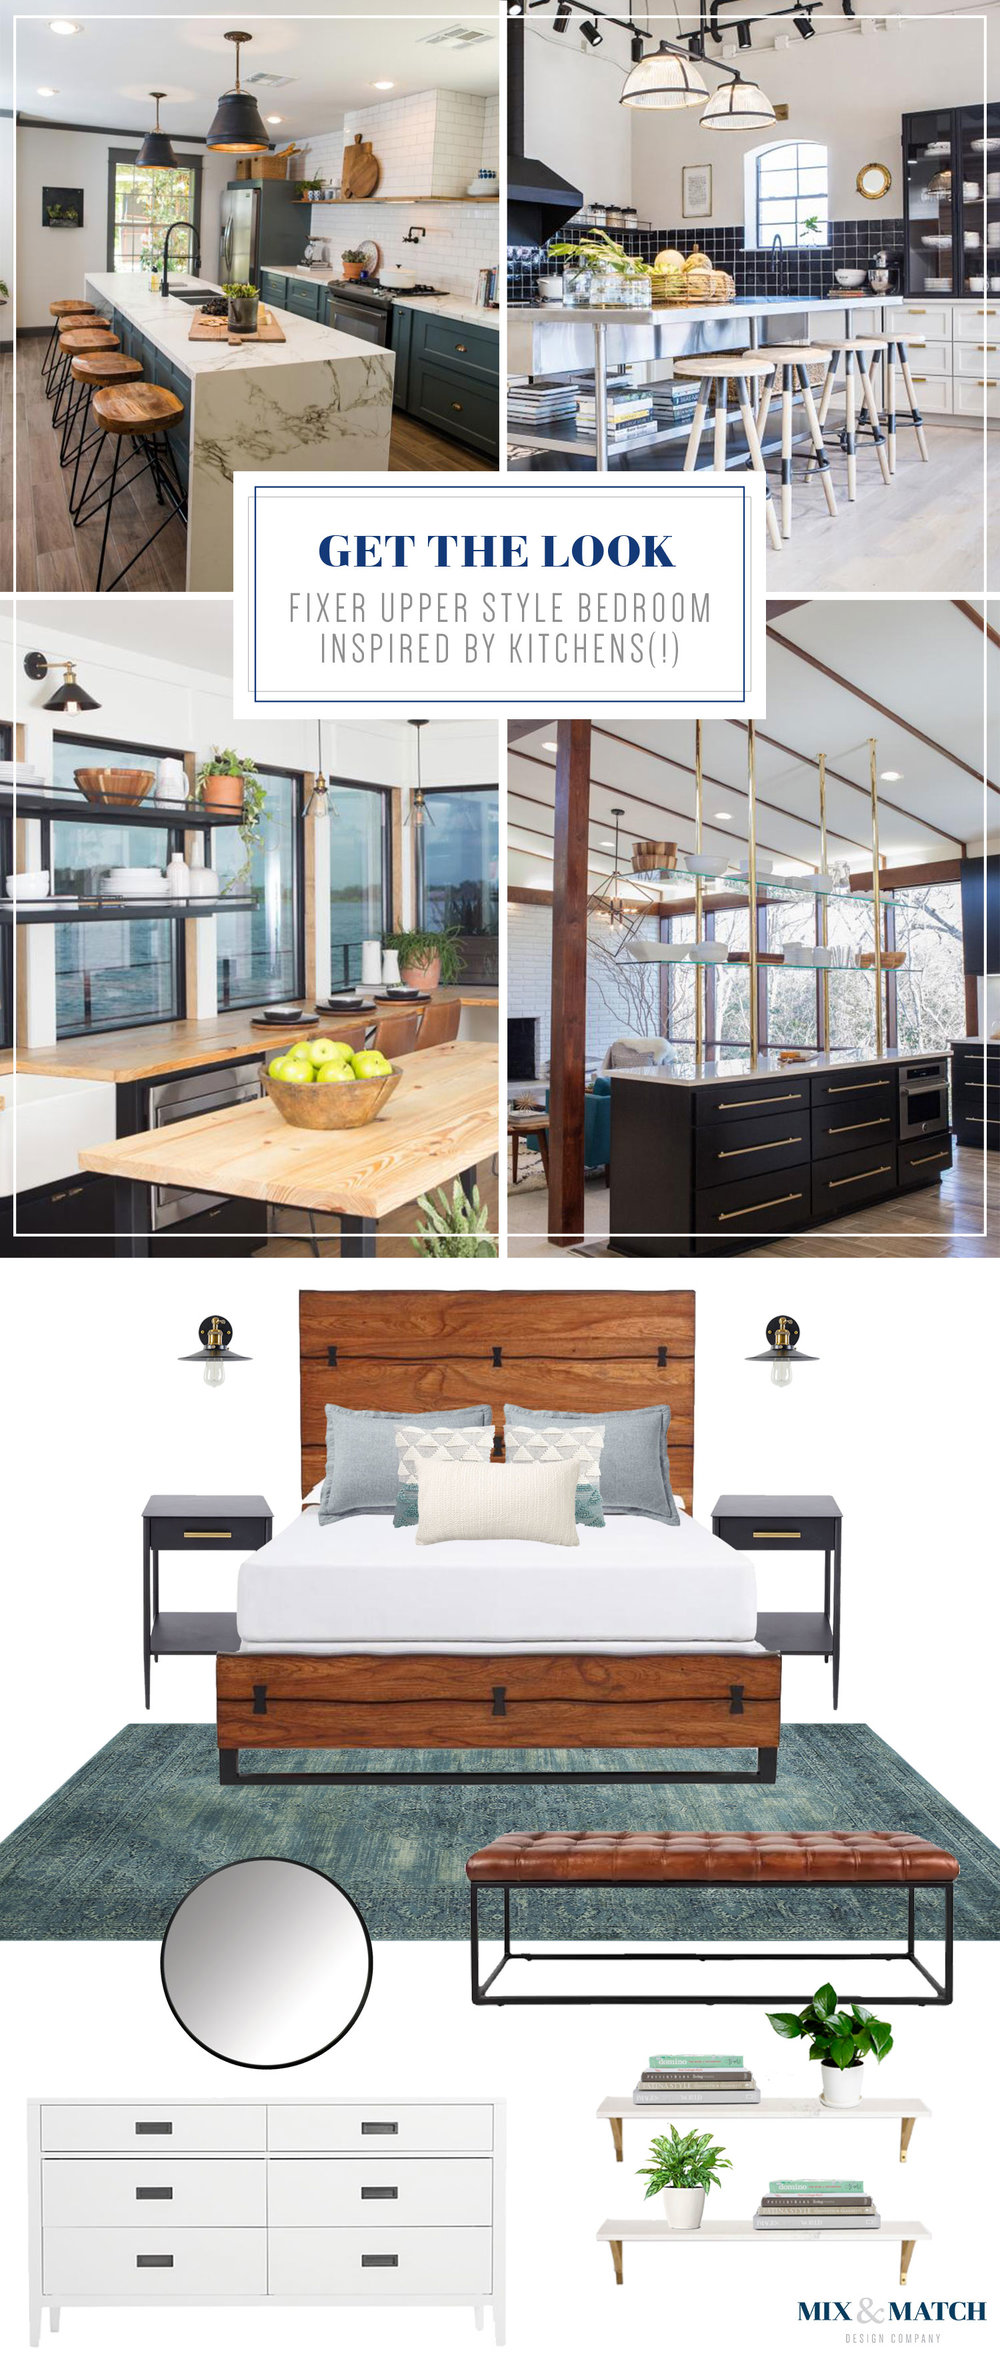 Get the Fixer Upper Industrial Modern Farmhouse look for your bedroom. This look was inspired by some of my favorite kitchens designed by Joanna Gaines. Clean lines, warm natural wood, and a good dose of black make for a cozy sleeping space.